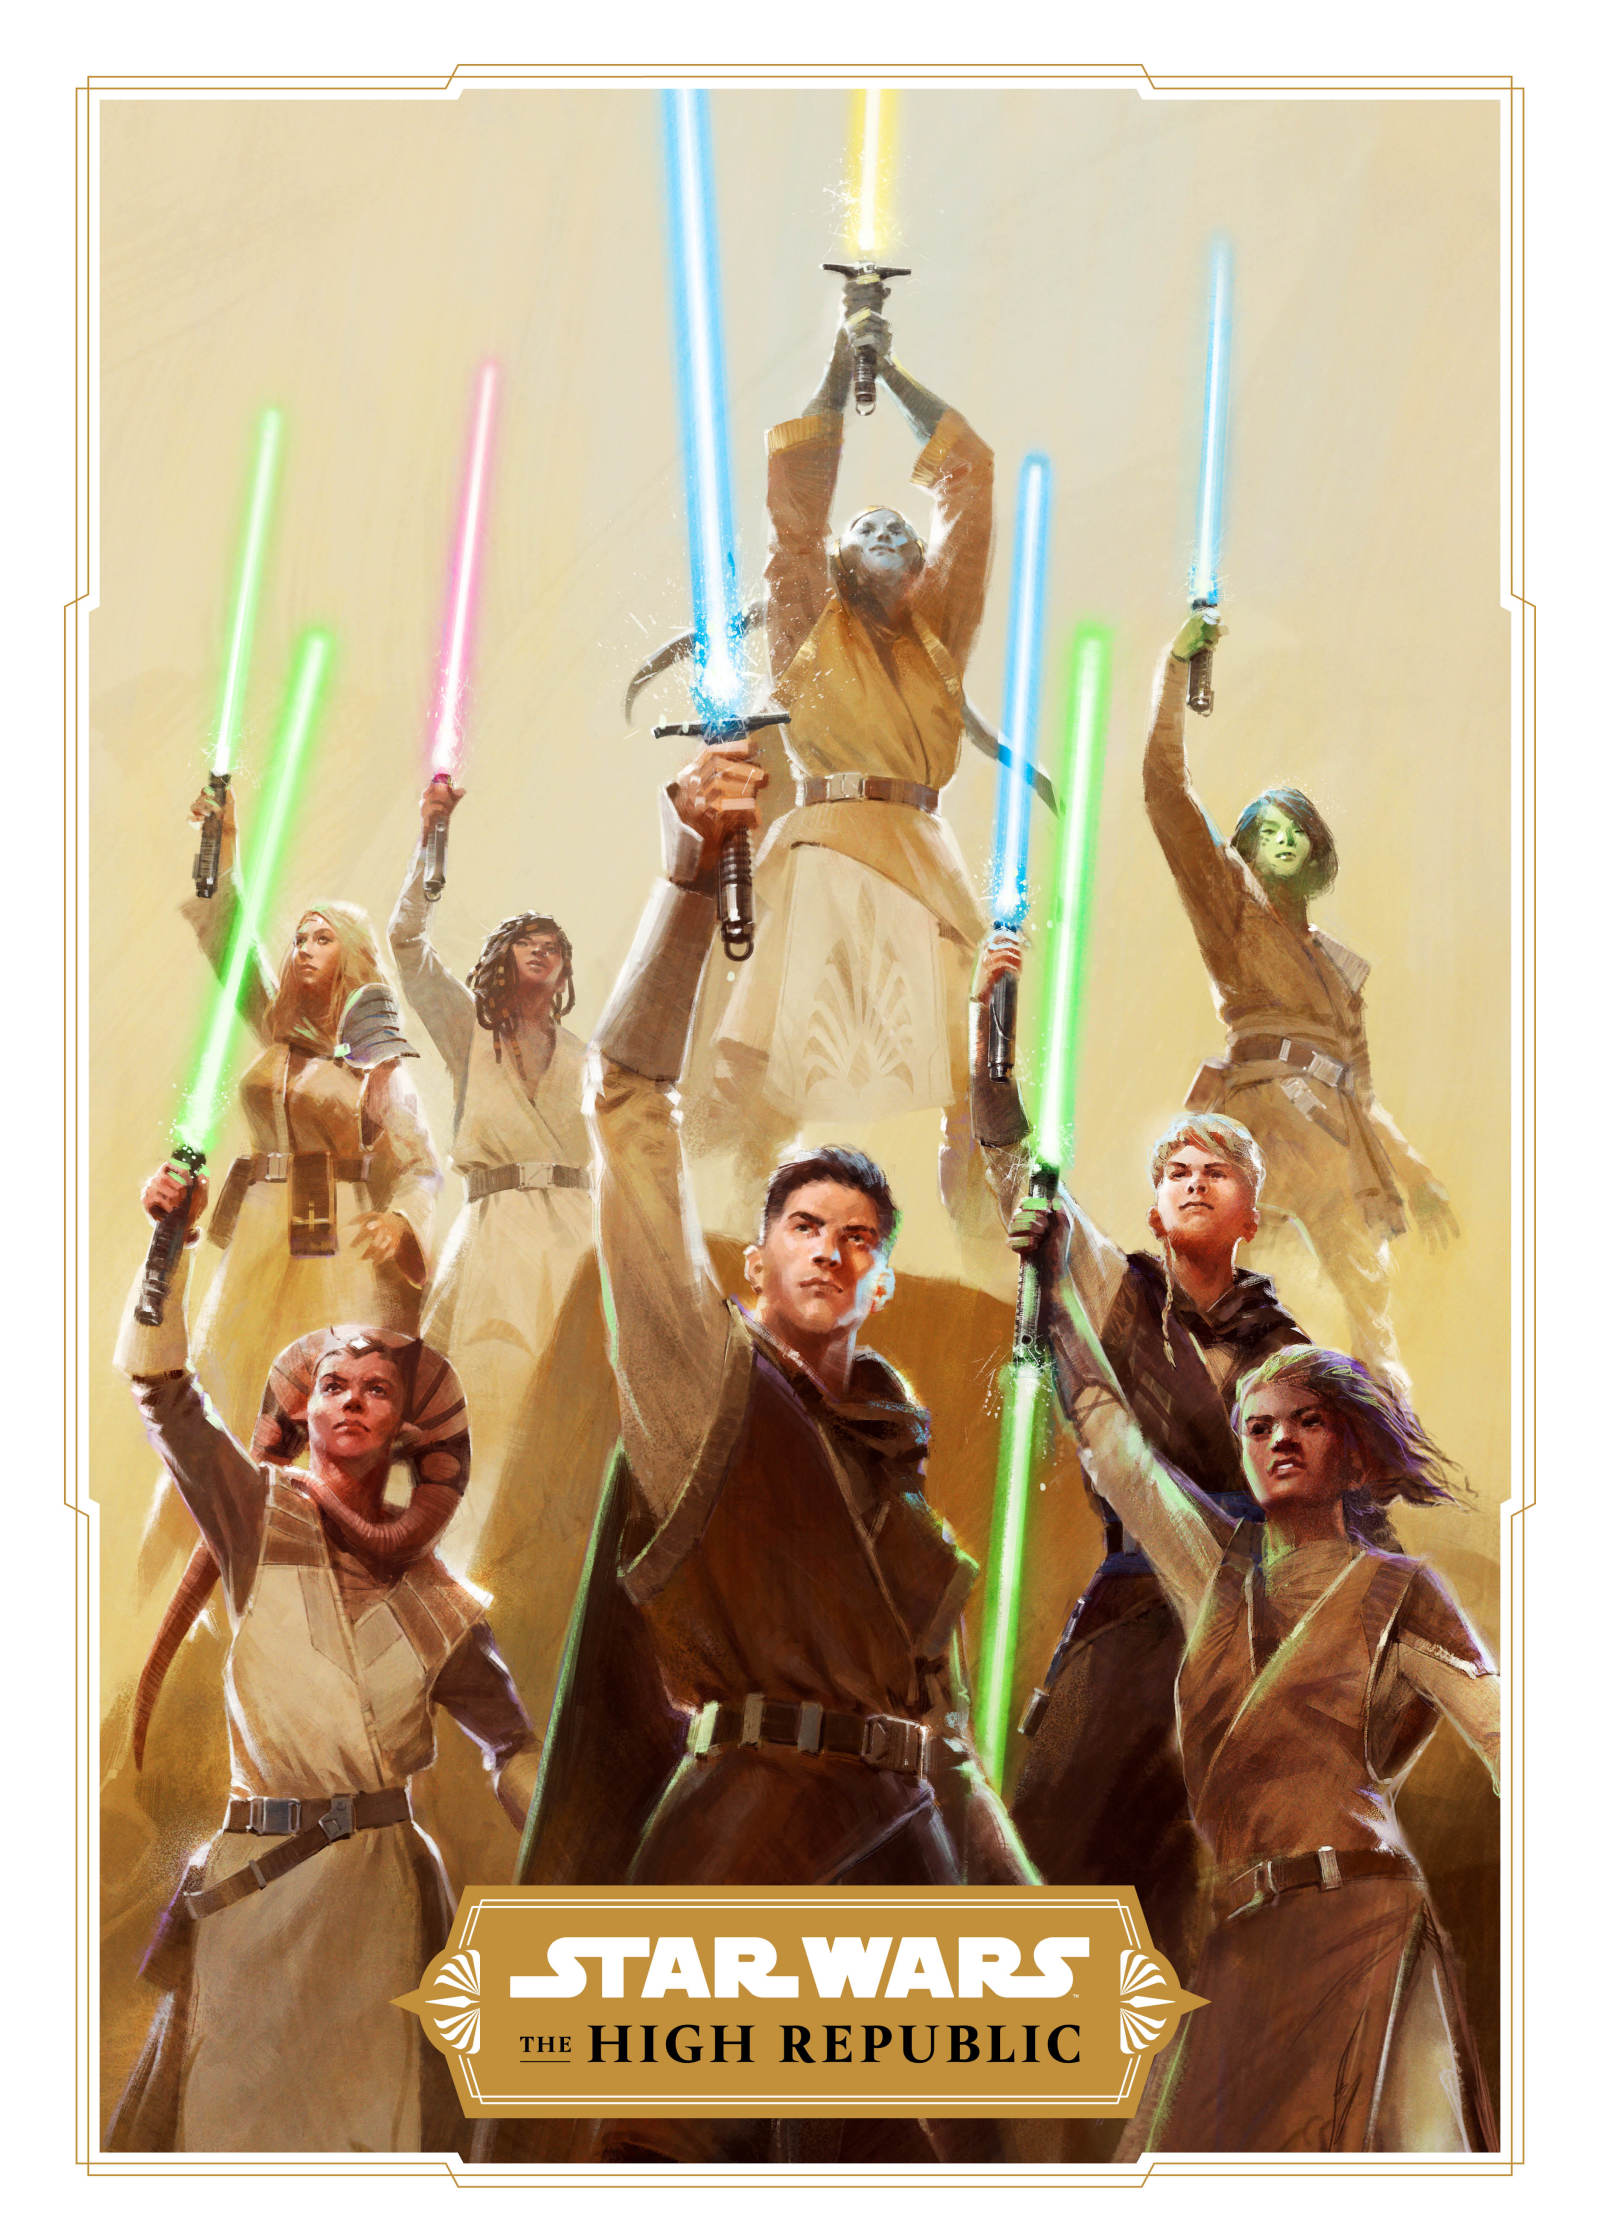 Star Wars: The High Republic publishing project is a positive addition